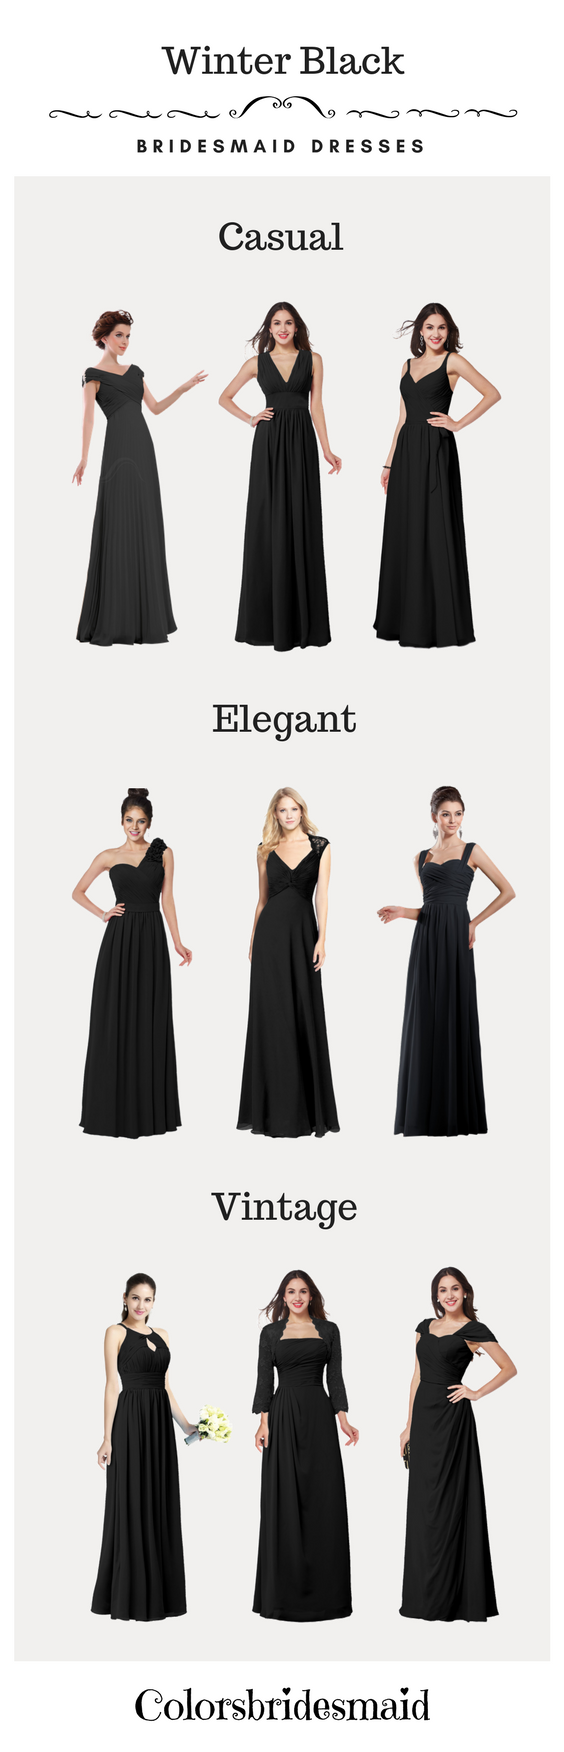 Is a black dress ok to wear to a wedding  These black bridesmaid dresses are very suitable for winter weddings